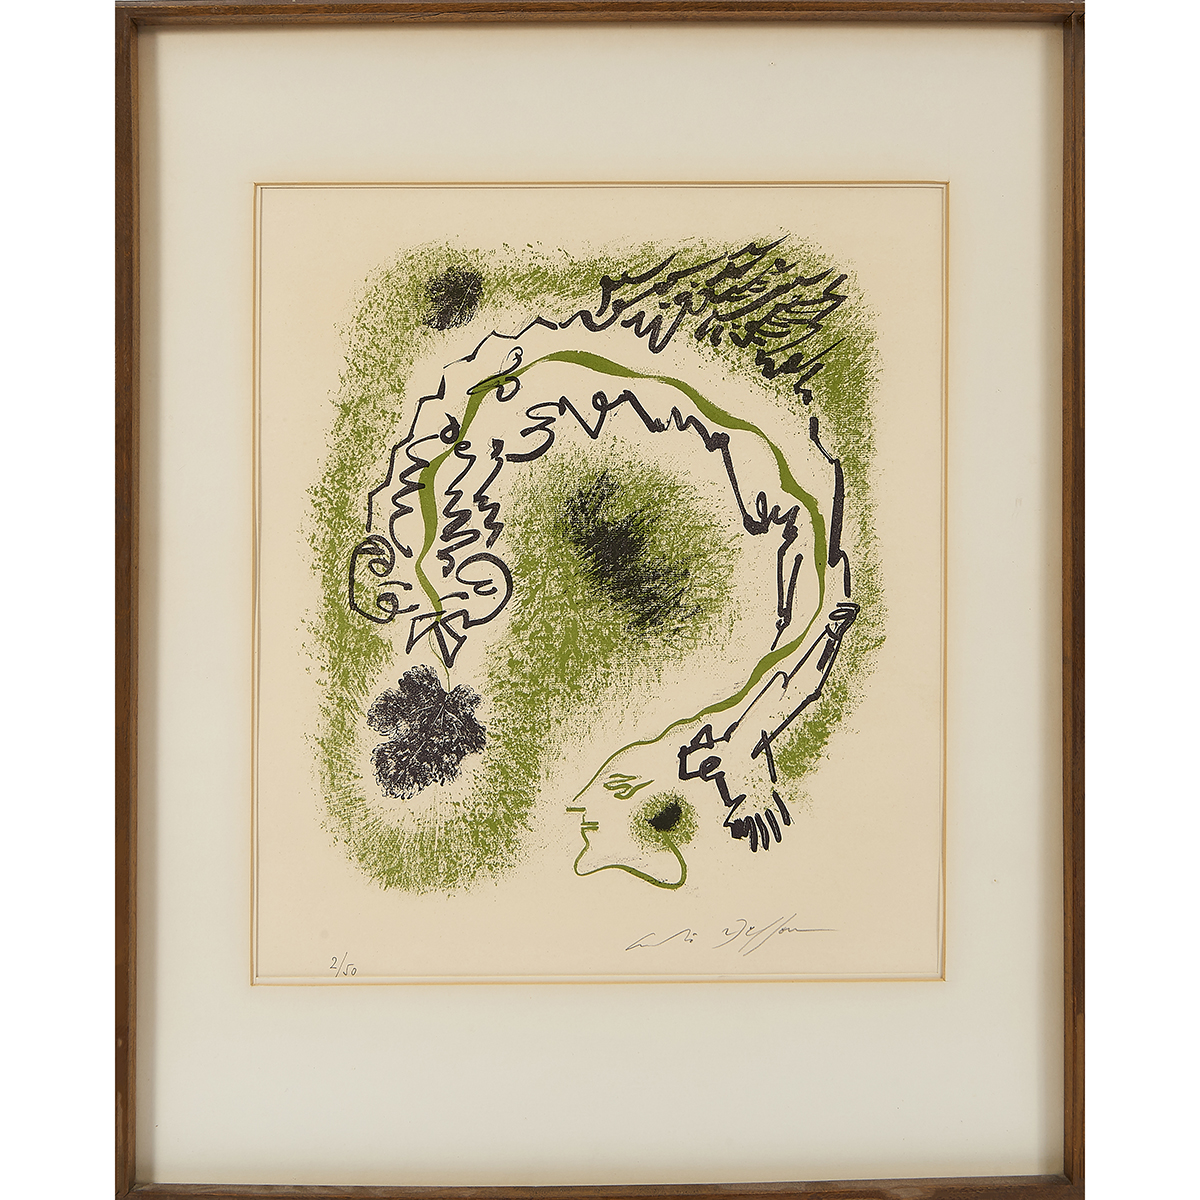 """André Masson, (French, 1896-1987), Metamorphosis, 1963, color lithograph, 14 5/8"""" x 14 1/16""""; sheet: 24 13/16"""" x 18 3/4"""""""